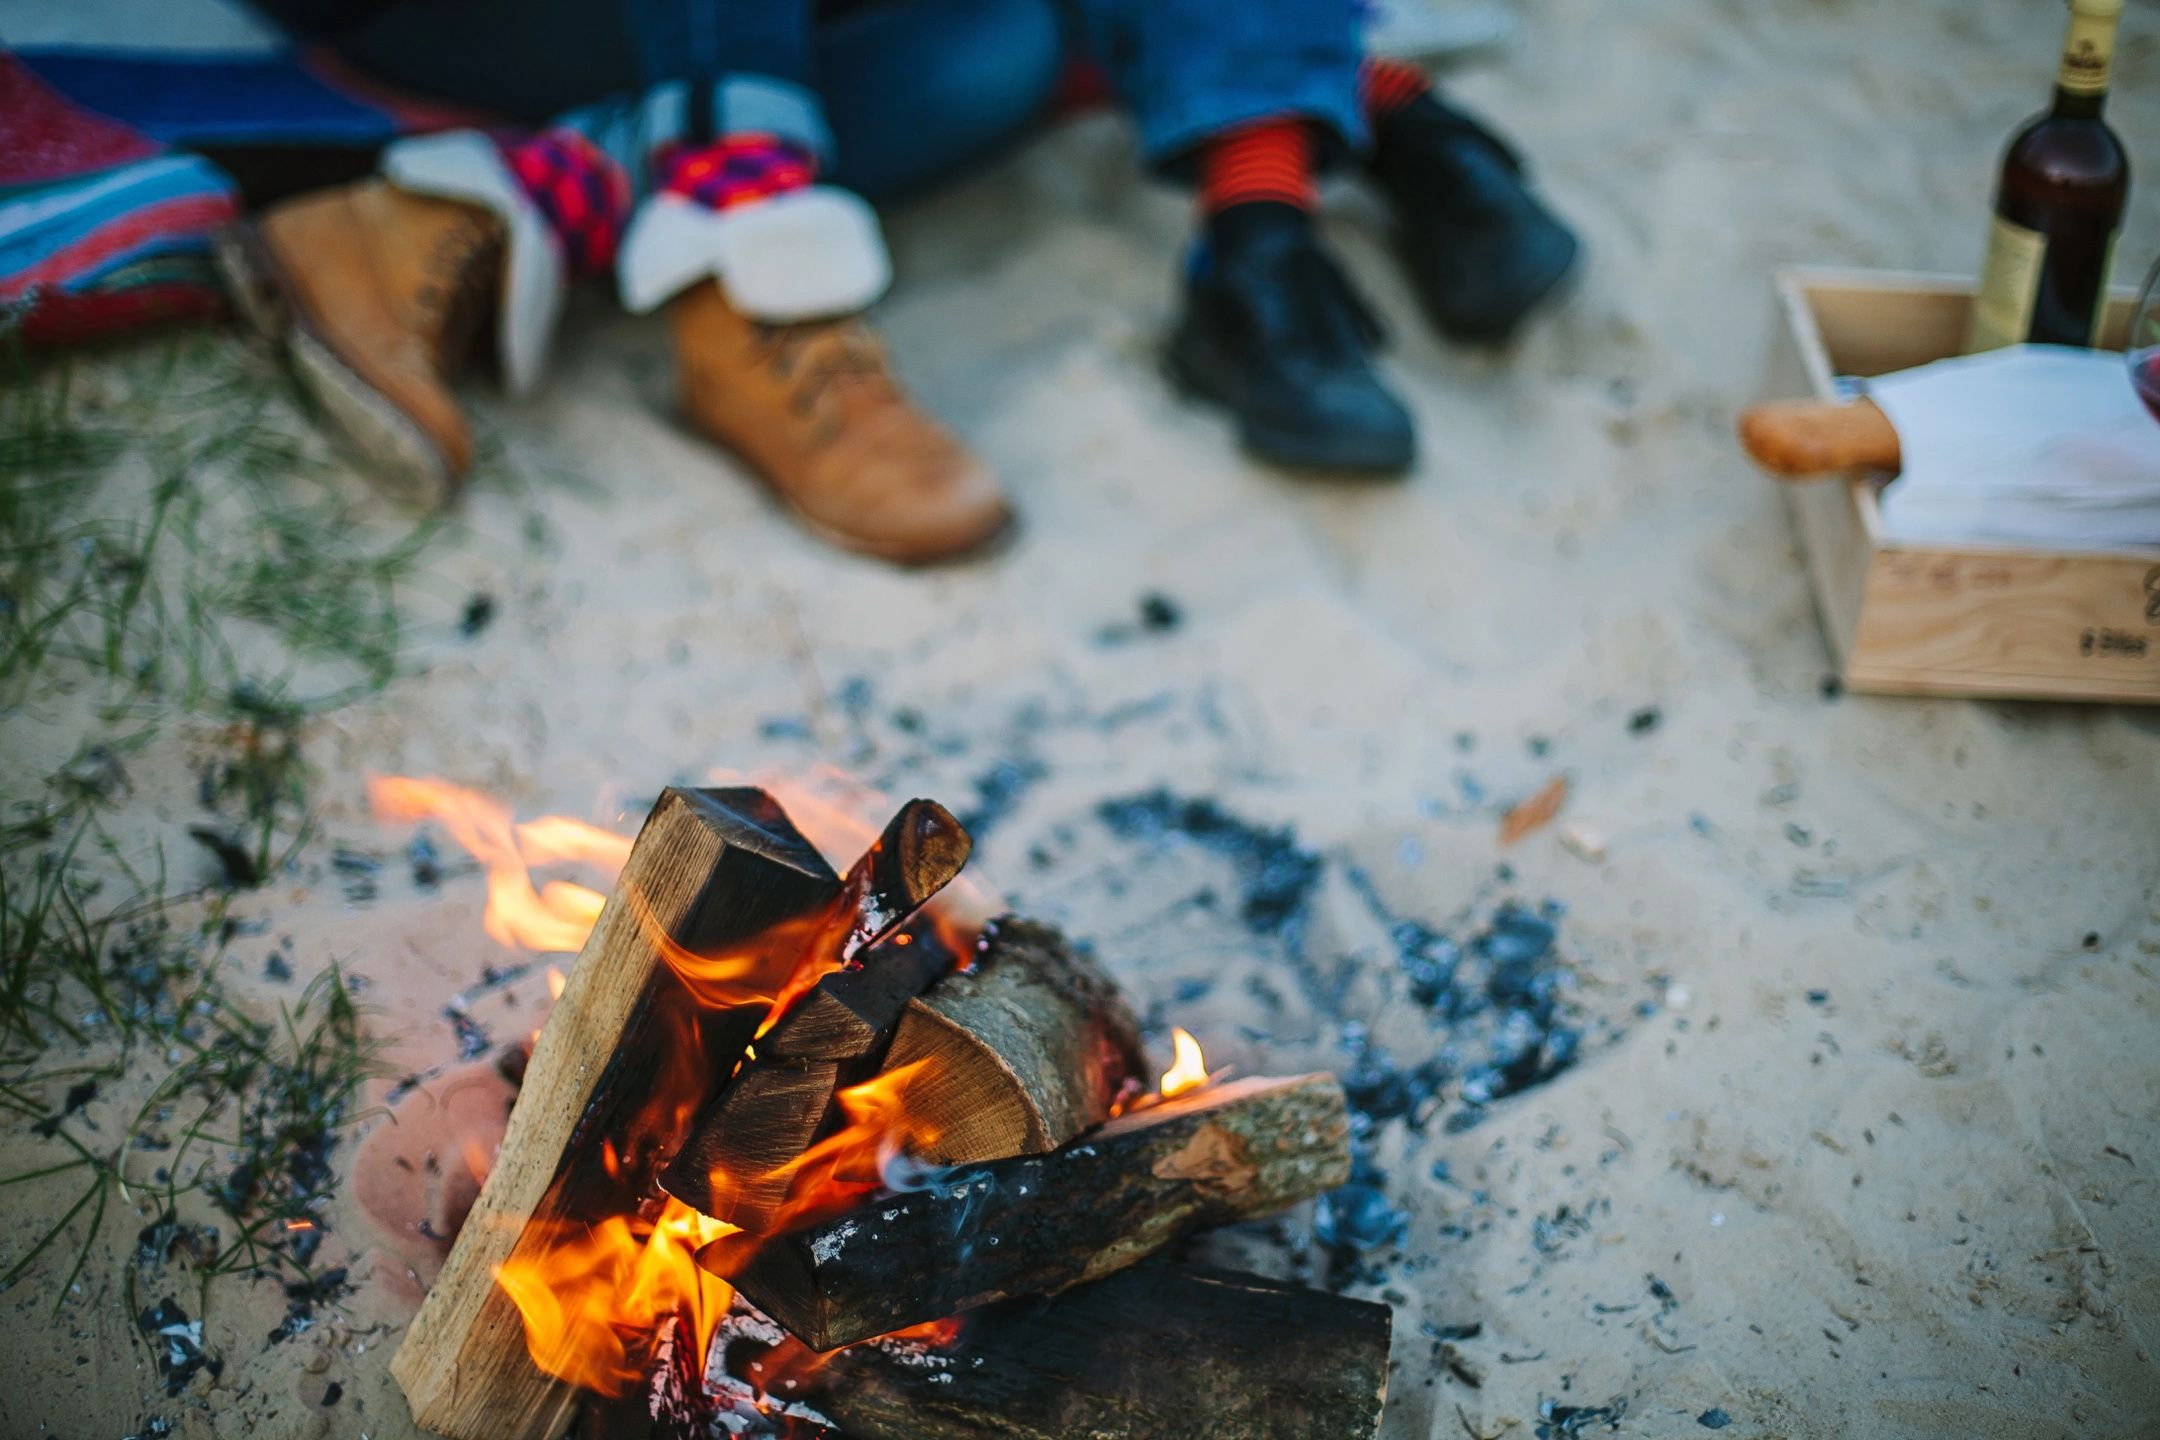 8 WINTER CAMPING TIPS FOR THE DEEP FREEZE